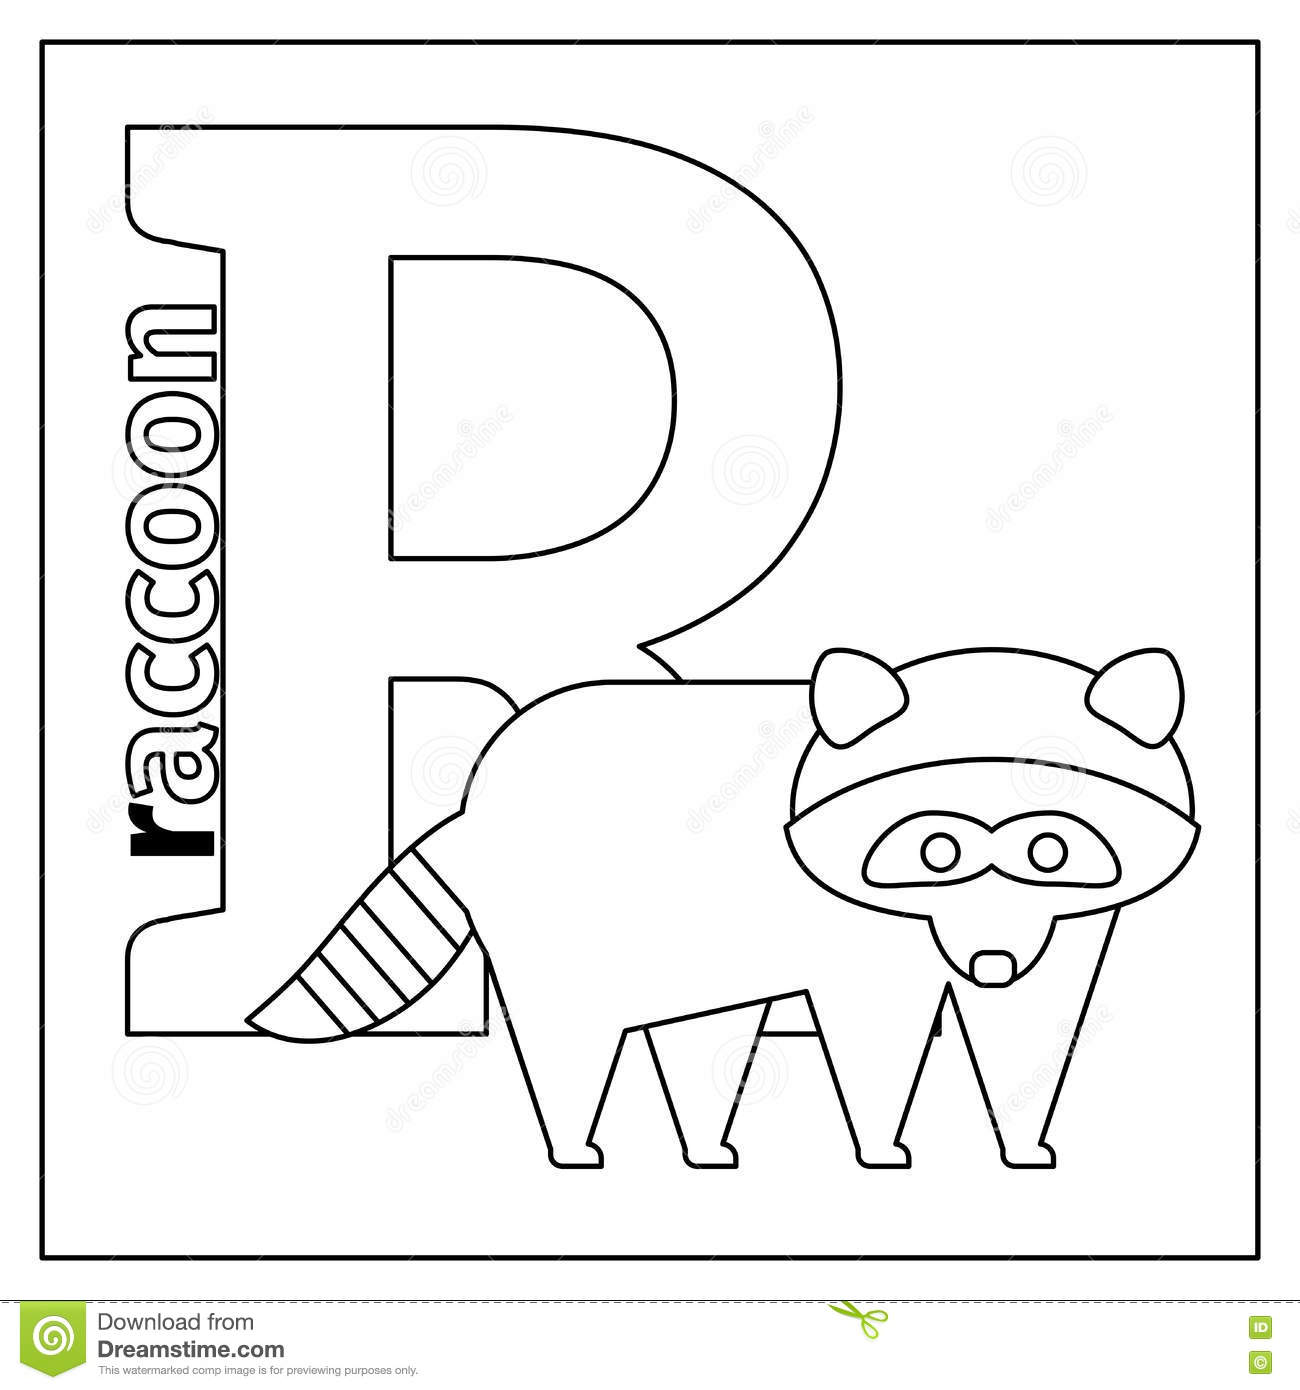 Raccoon Letter R Coloring Page Stock Vector Illustration Of